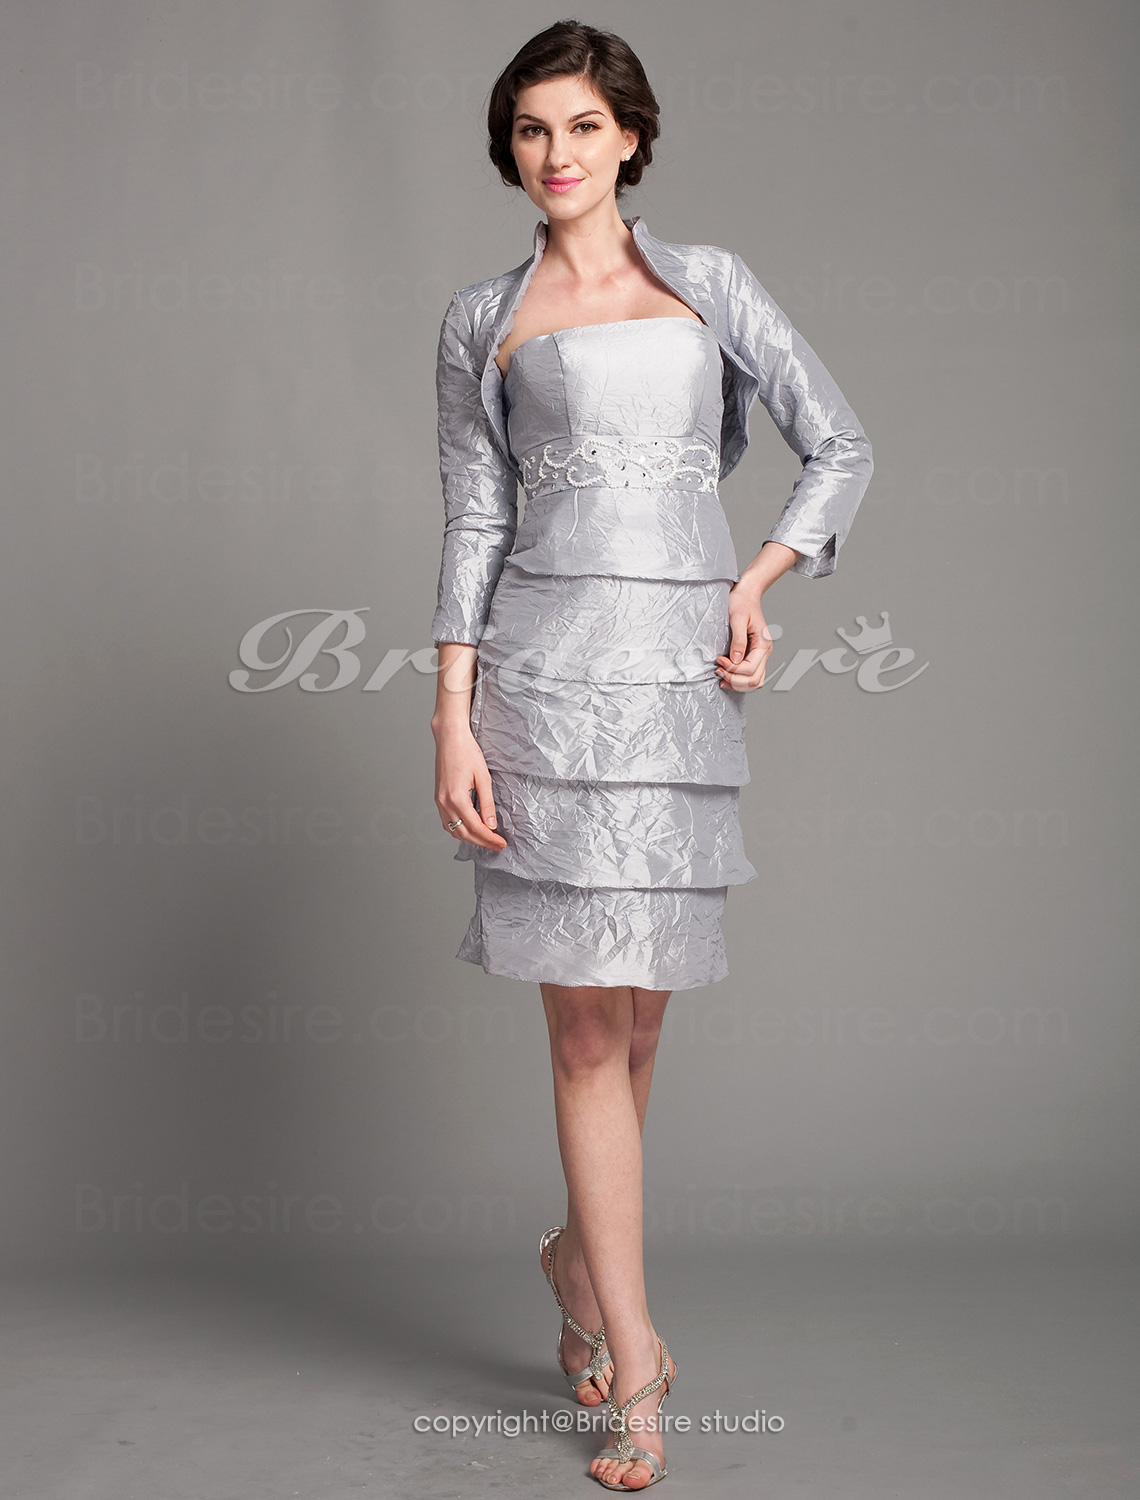 Sheath/Column Taffeta Knee-length Strapless Mother Of The Bride Dress With A Wrap